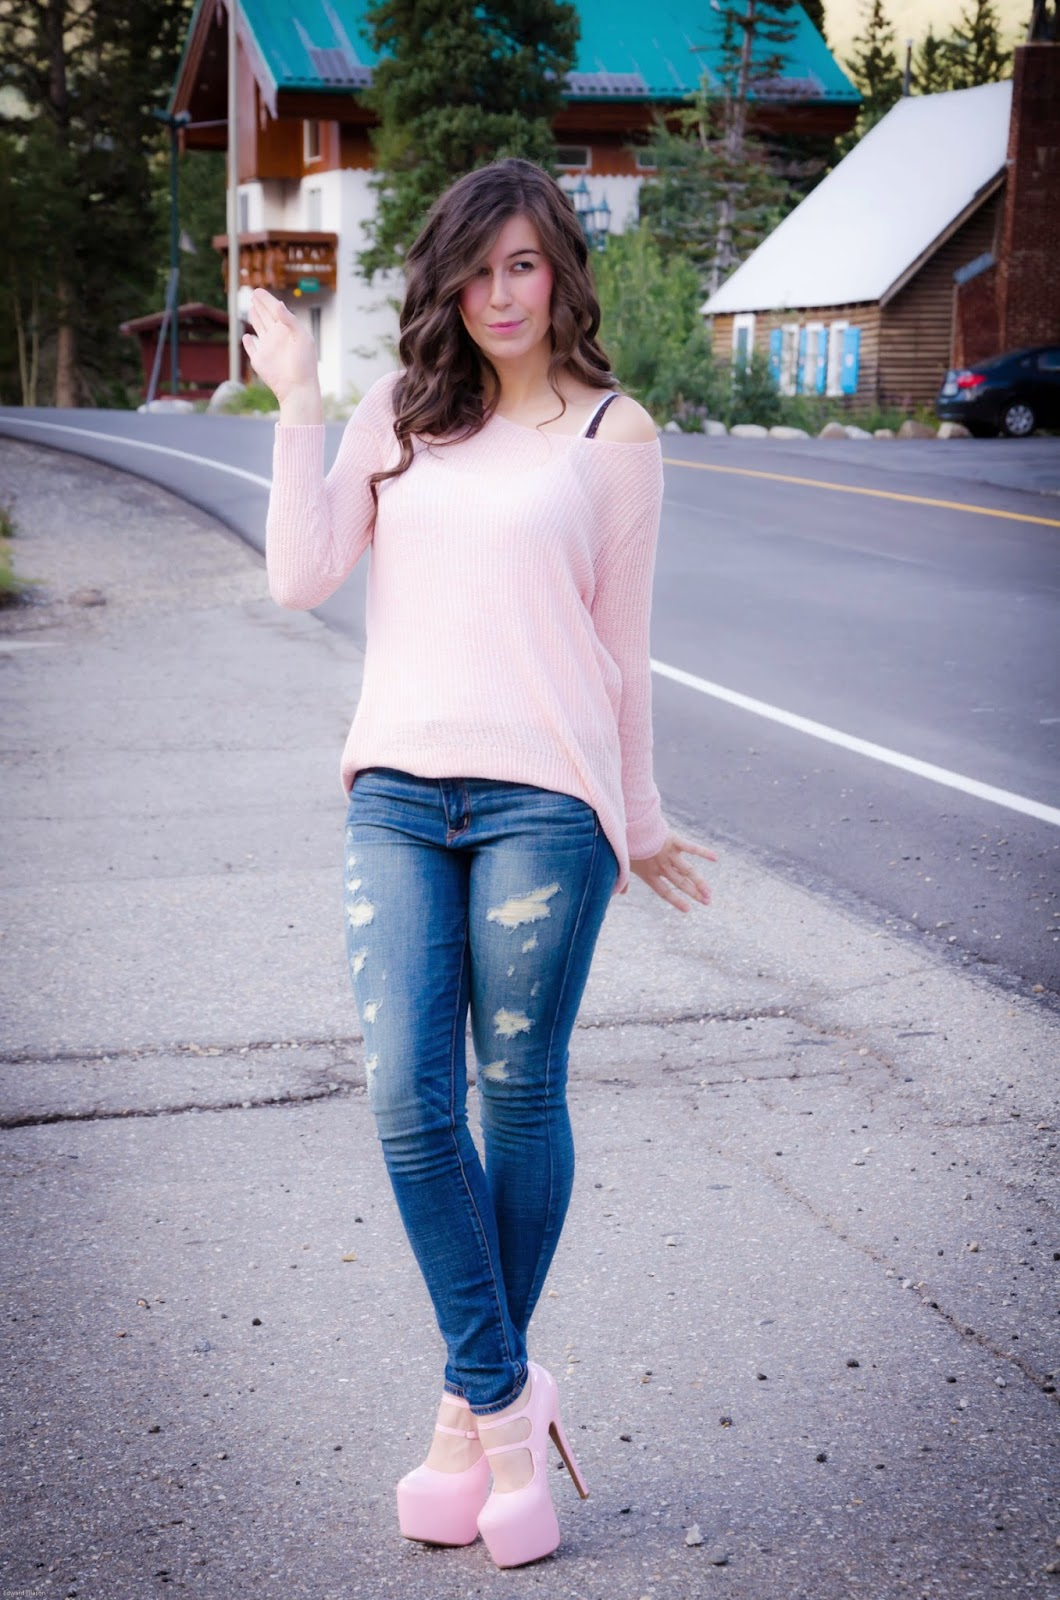 american eagle denim experience, american eagle jeans, denim experience, chunky sweater outfit, fall outfit, fall wear, sweater outfit, off the shoulder sweater outfit, destroyed denim, pink pumps,